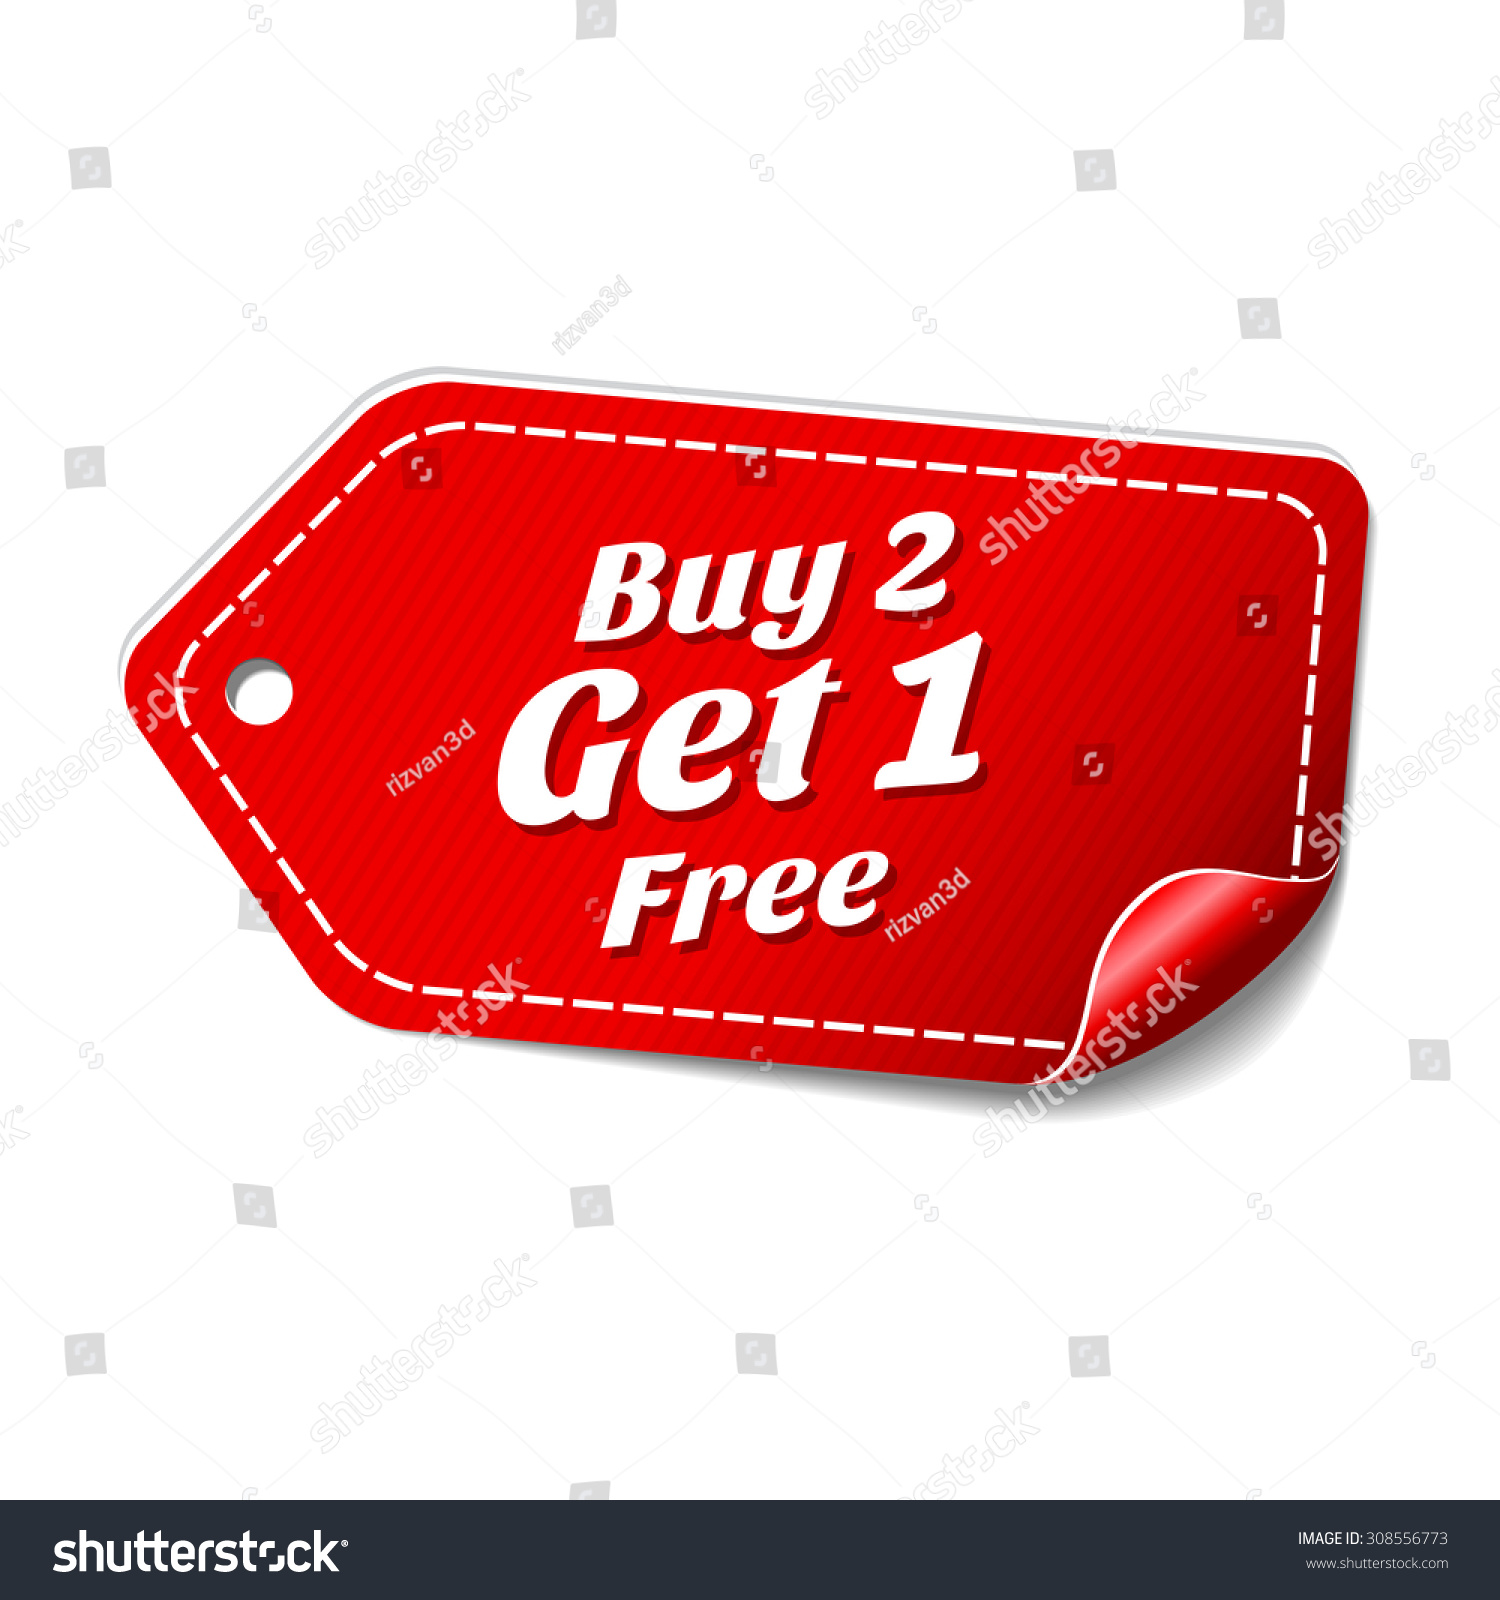 Buy 2 Get 1 Free Red Vector Icon Download Image How To Buy Stocks For